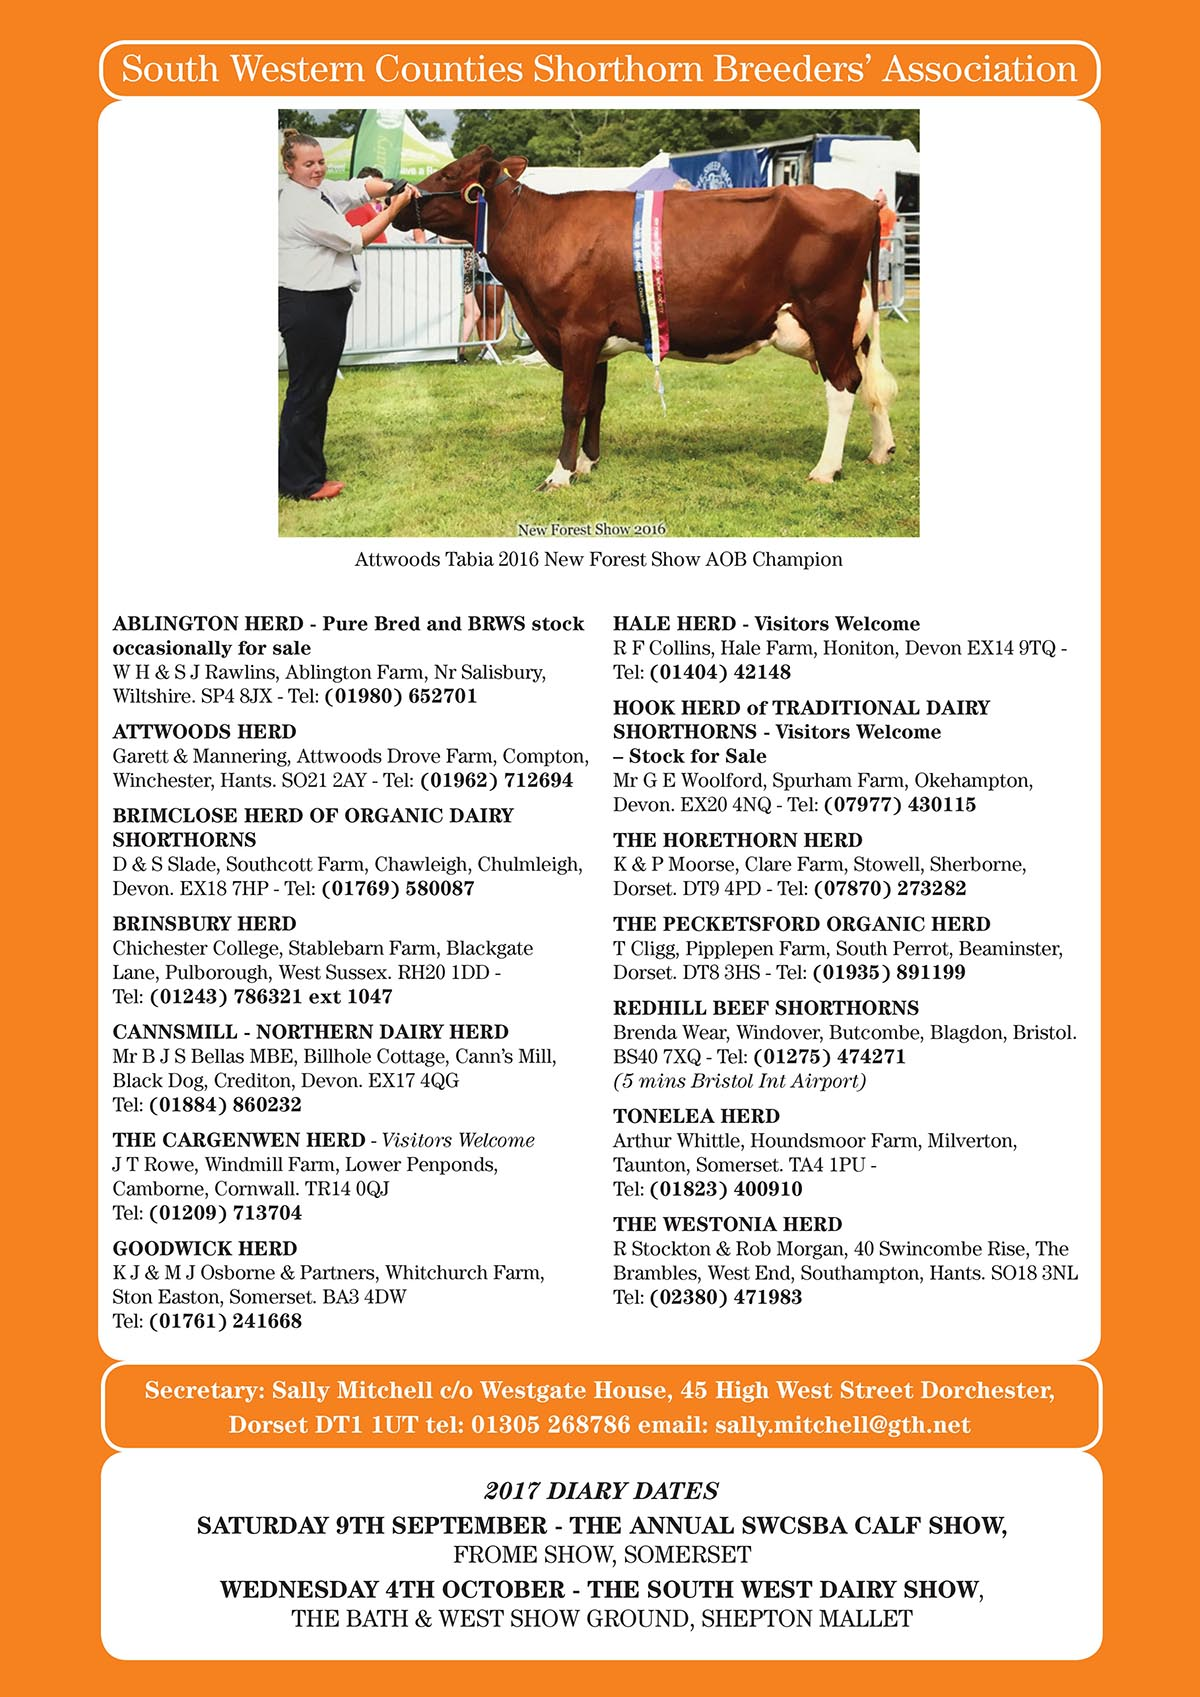 South Western Counties Shorthorn Breeders Association